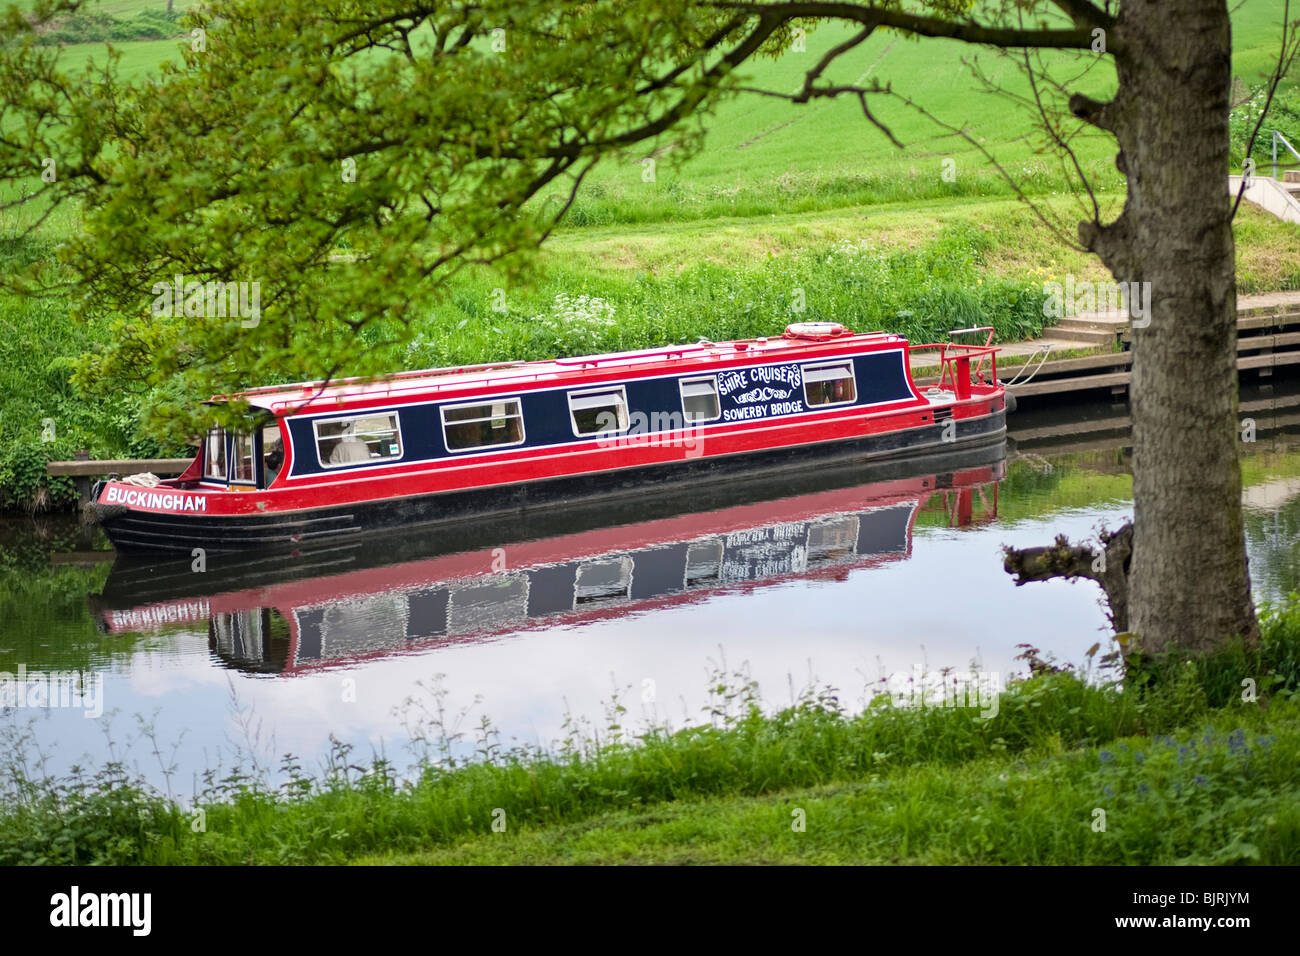 Canal boat uk - barge docked outside a lock on the Huddersfield Narrow Canal, near Huddersfield, West Yorkshire, - Stock Image